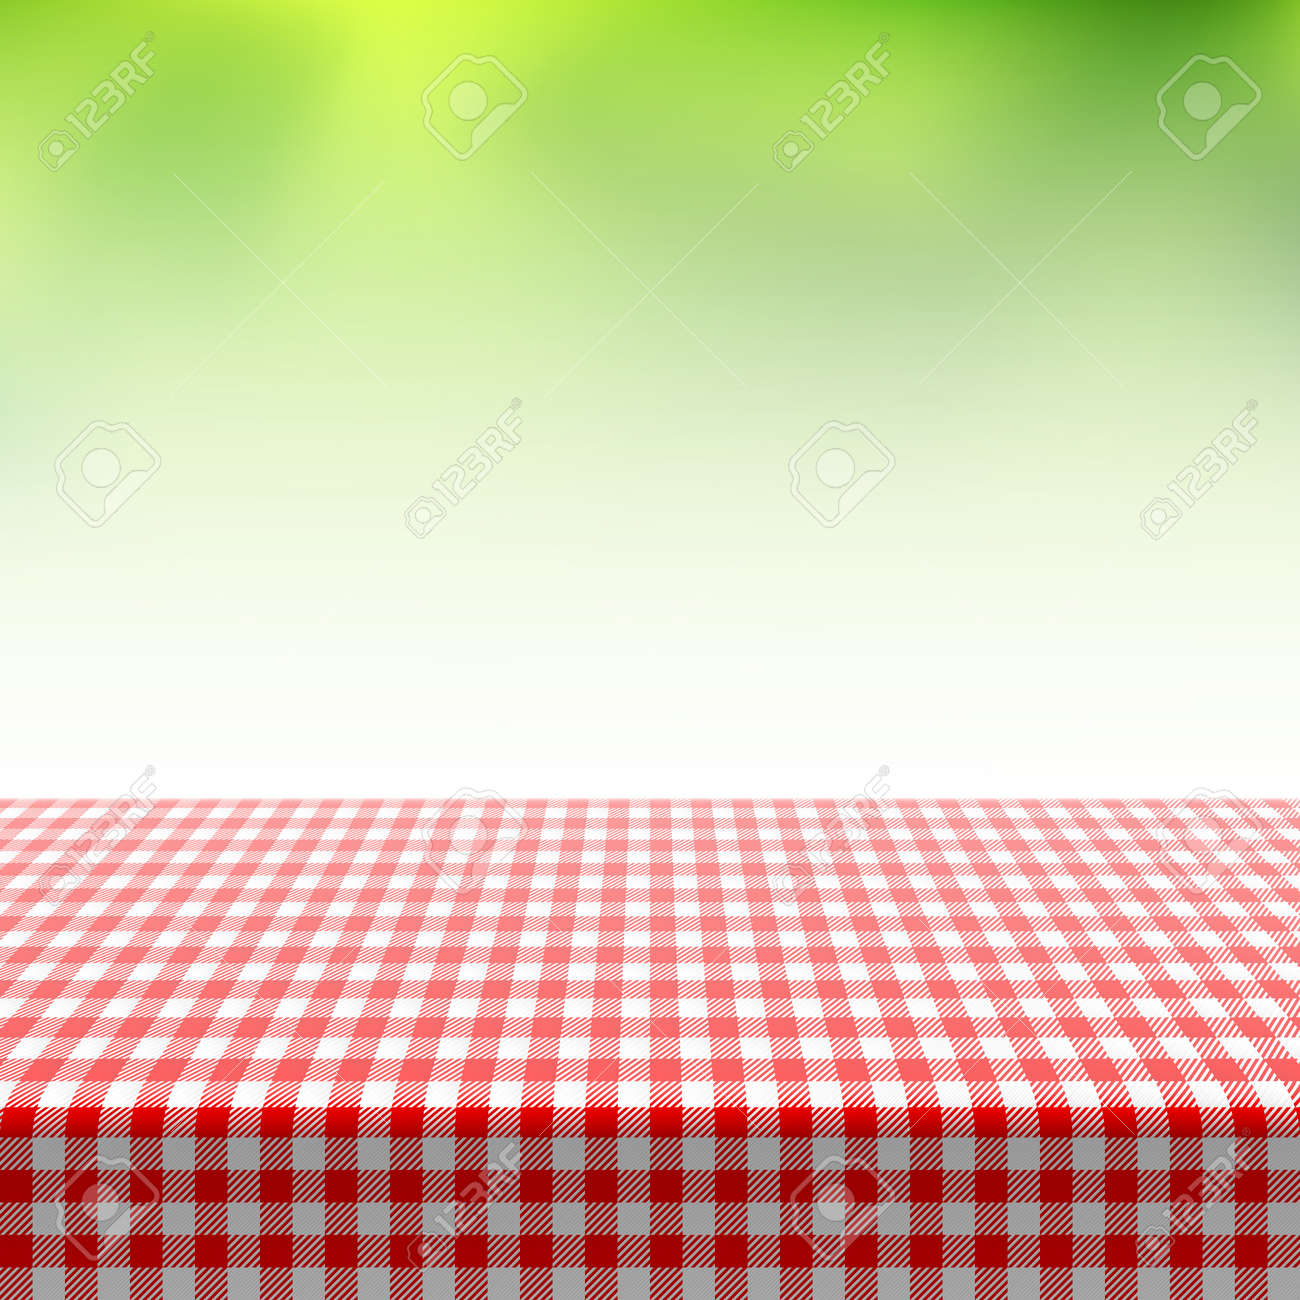 Picnic Table Covered With Checkered Tablecloth Stock Vector   29083735